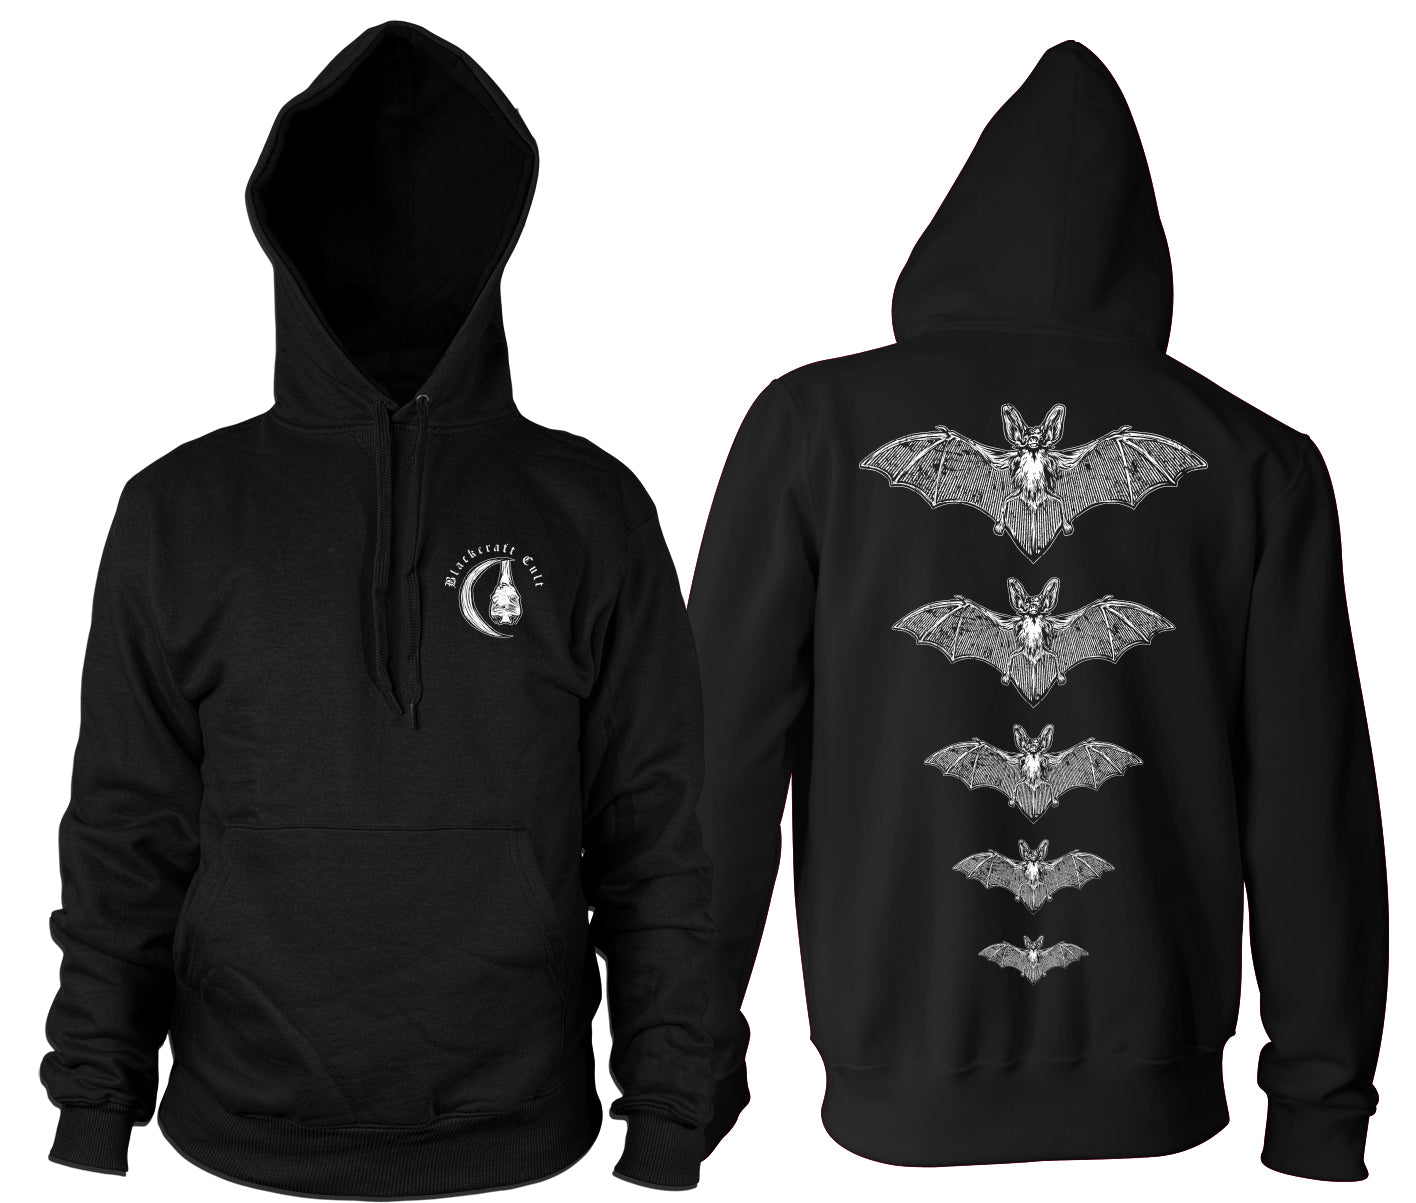 Release The Bats - Hooded Pullover Sweater